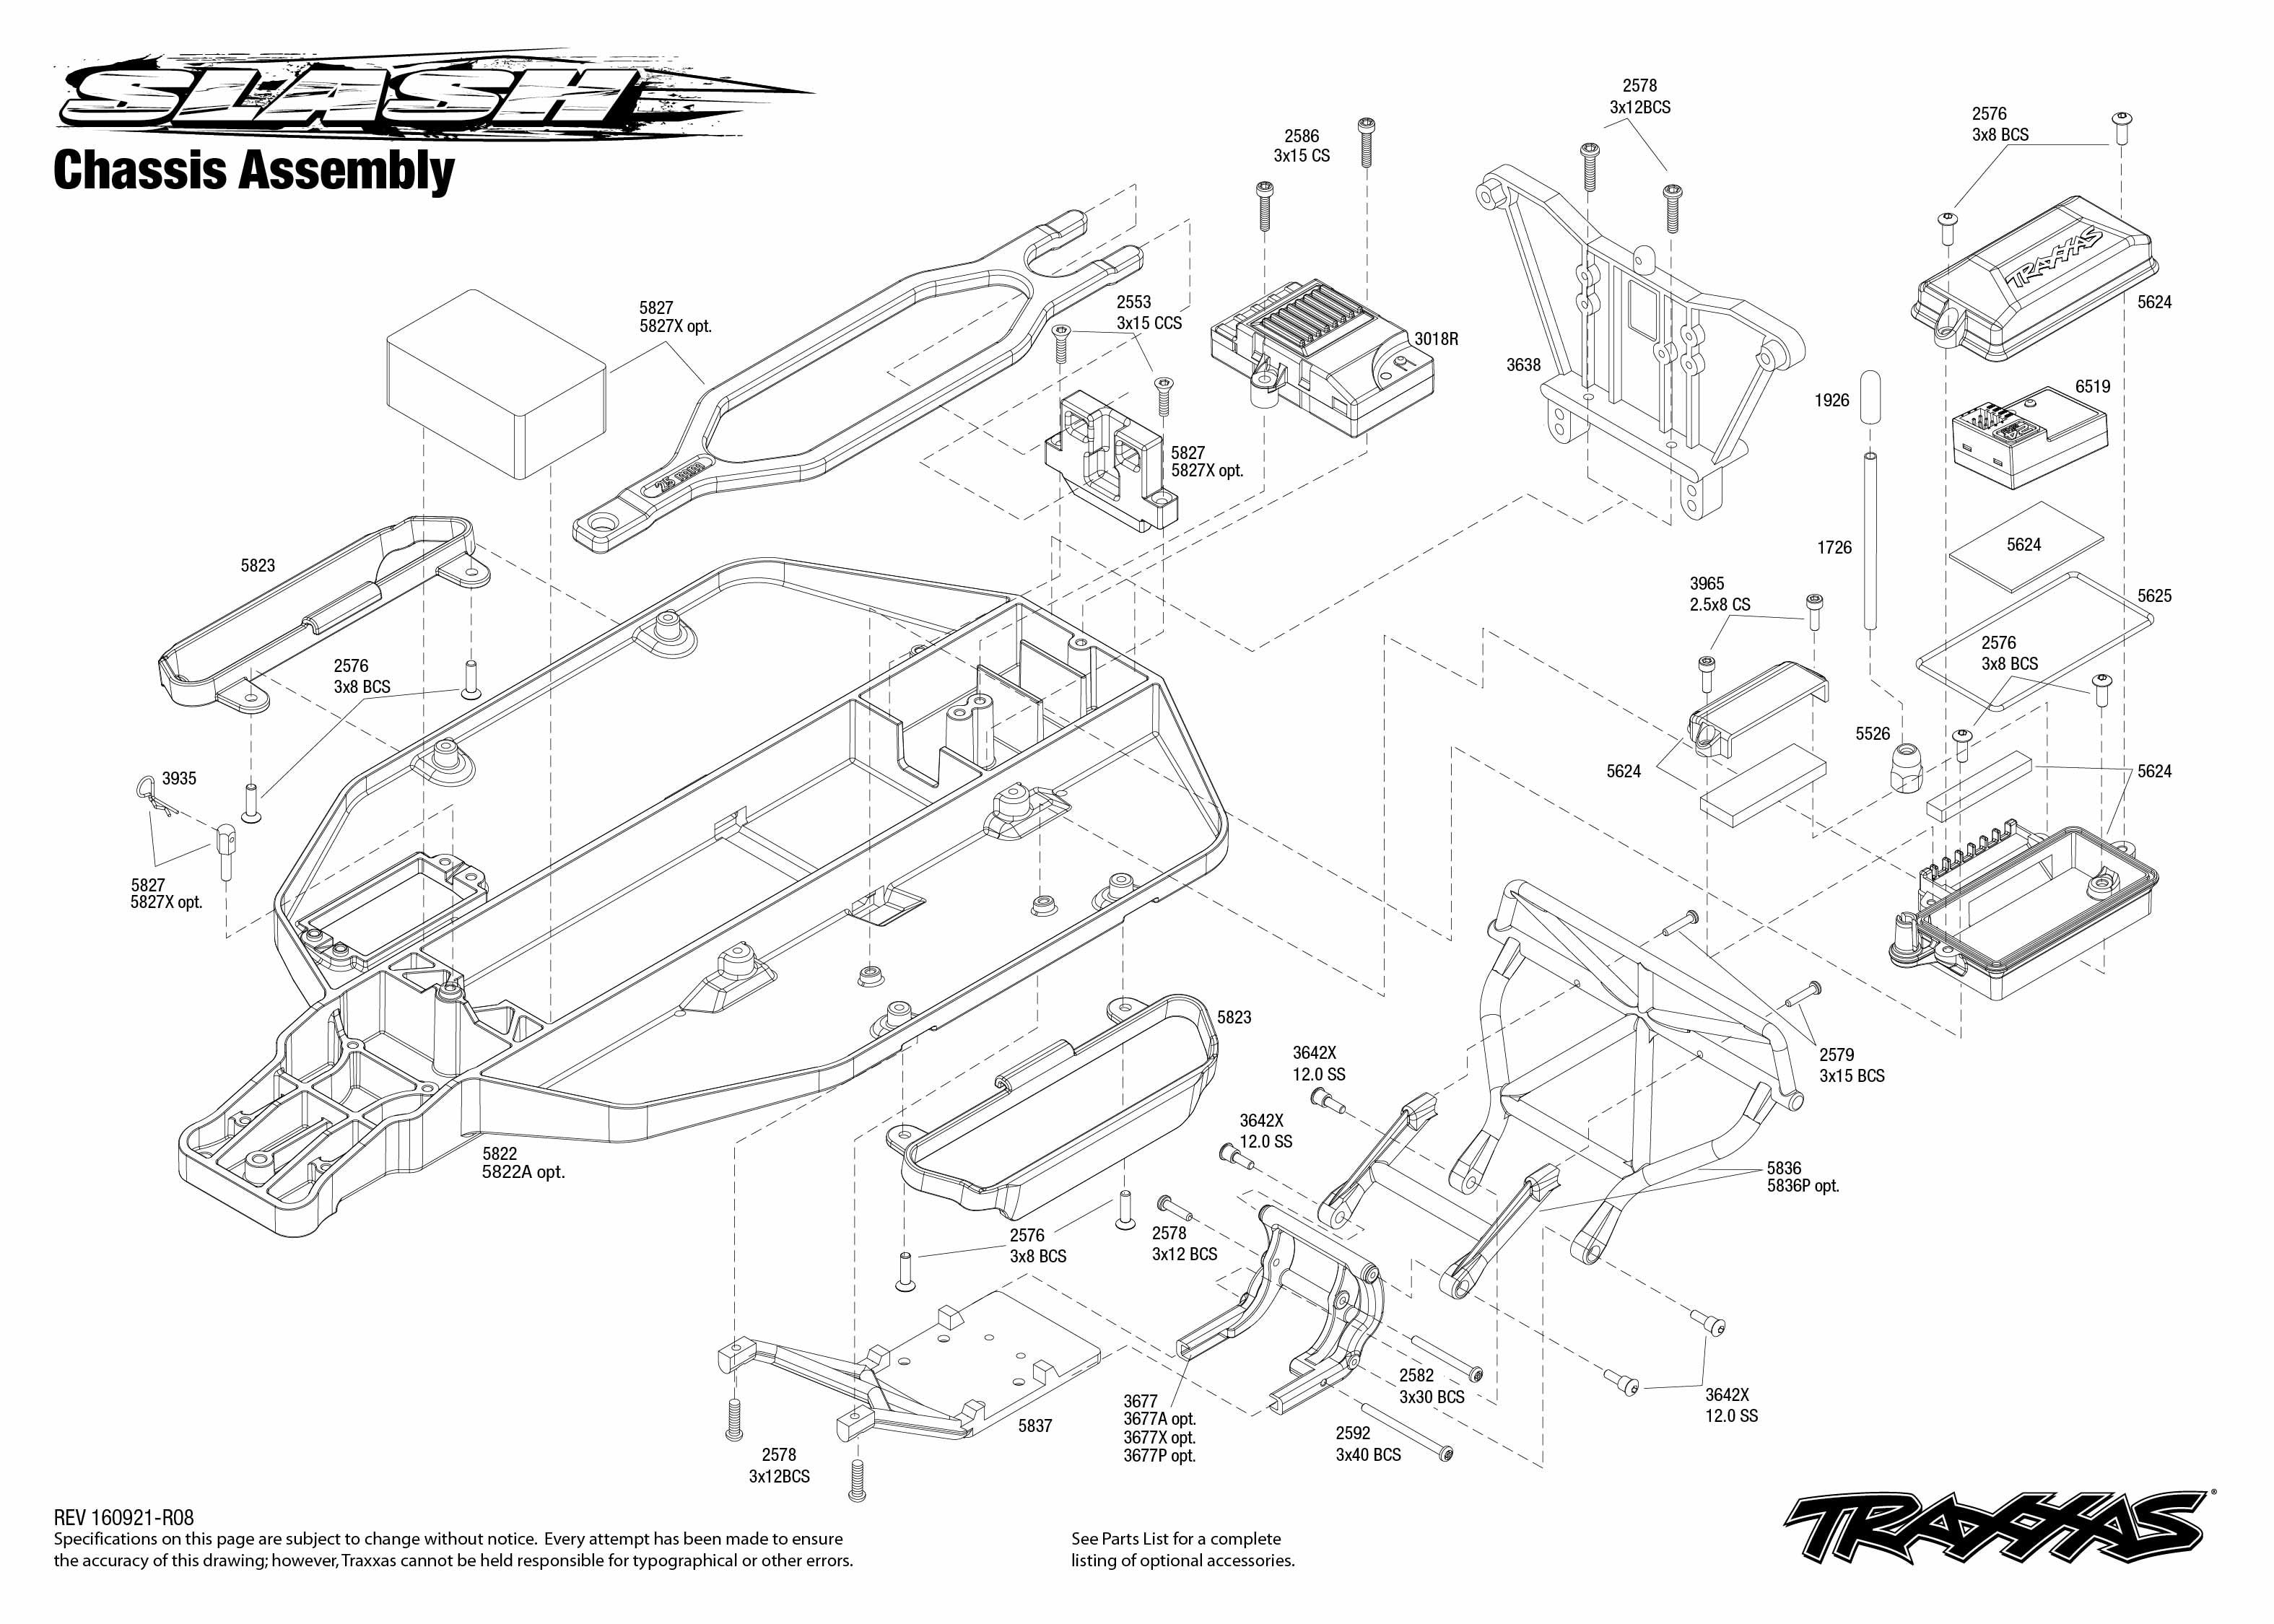 Slash 1 Chassis Assembly Exploded View